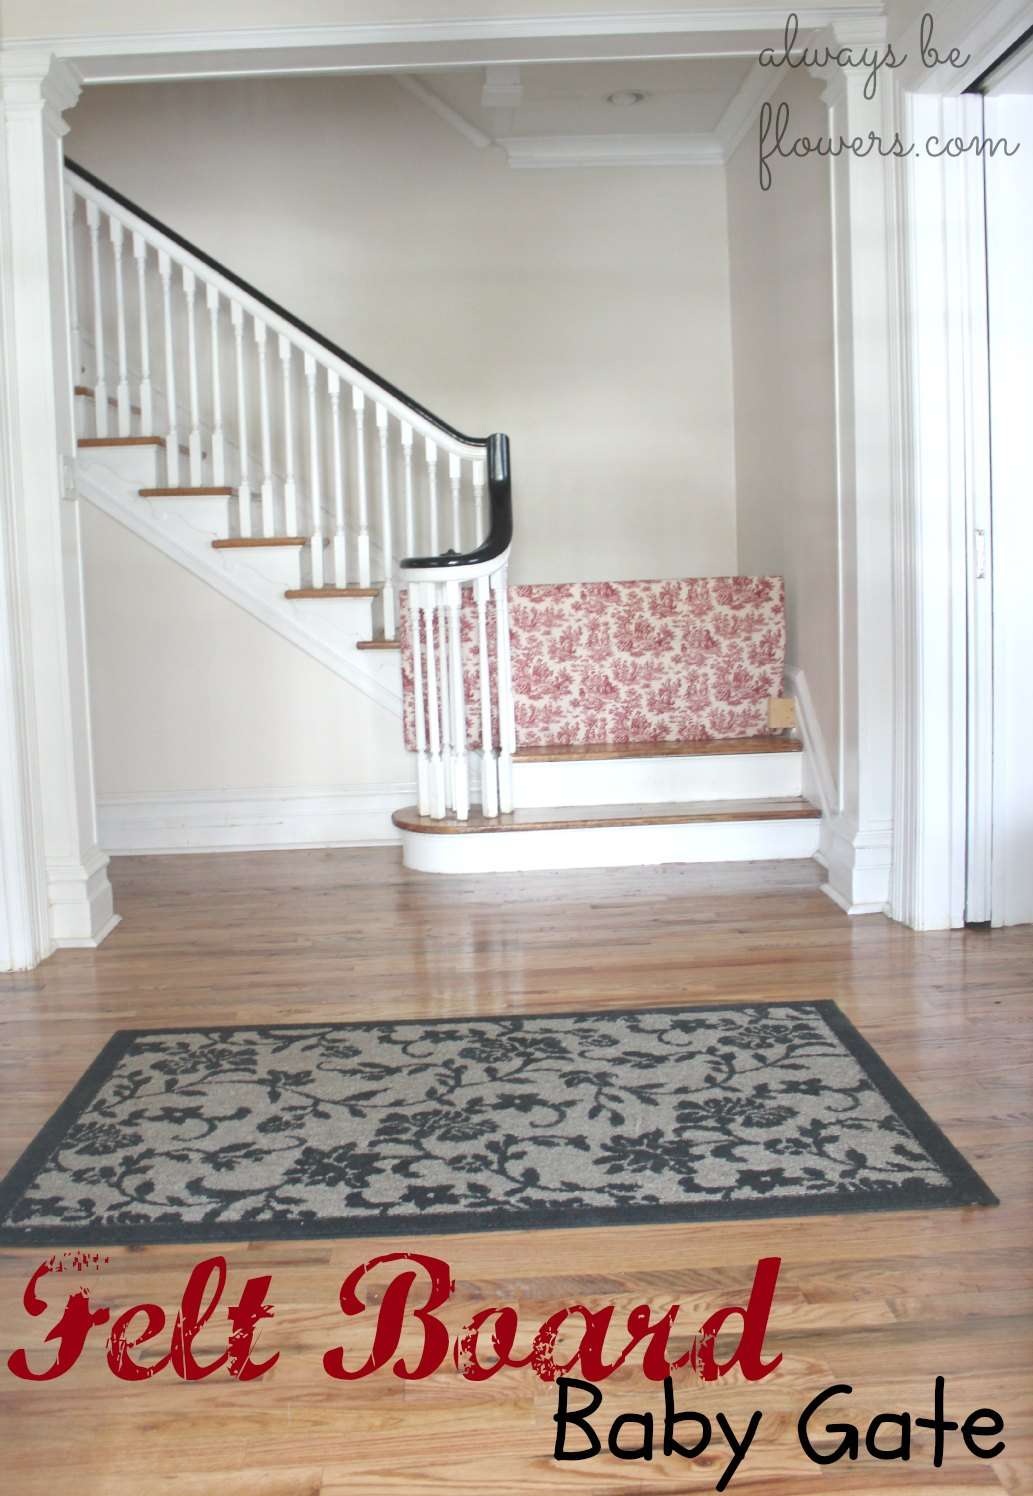 Upholstered on one side and felt on the other, this gate looks pretty decent in the entryway. I do need a new rug though...